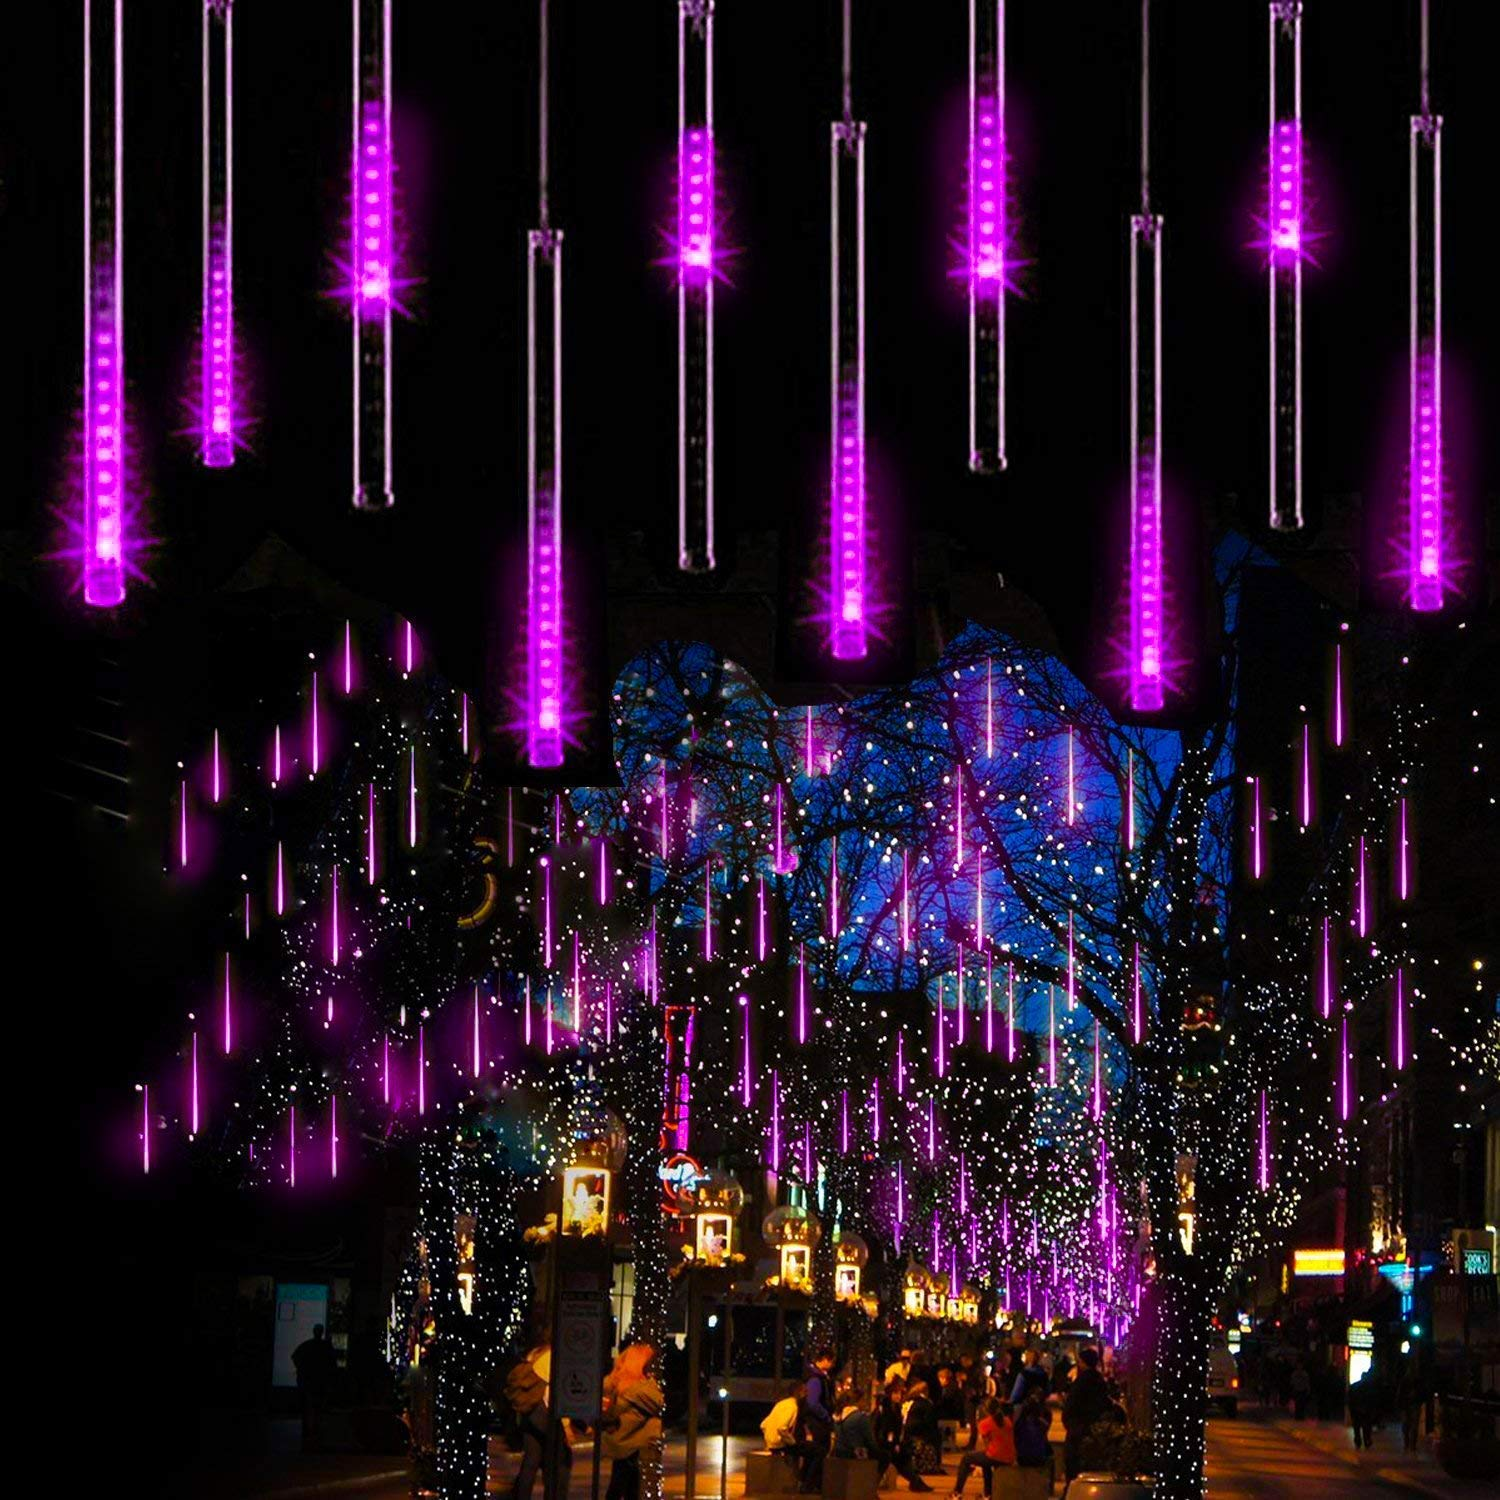 Aukora Rain Drop Lights, LED Meteor Shower Lights 11.8 inch 8 Tubes 144leds, Icicle Snow Falling Lights for Xmas Wedding Party Holiday Garden Tree Christmas Thanksgiving Decoration Outdoor (Purple)